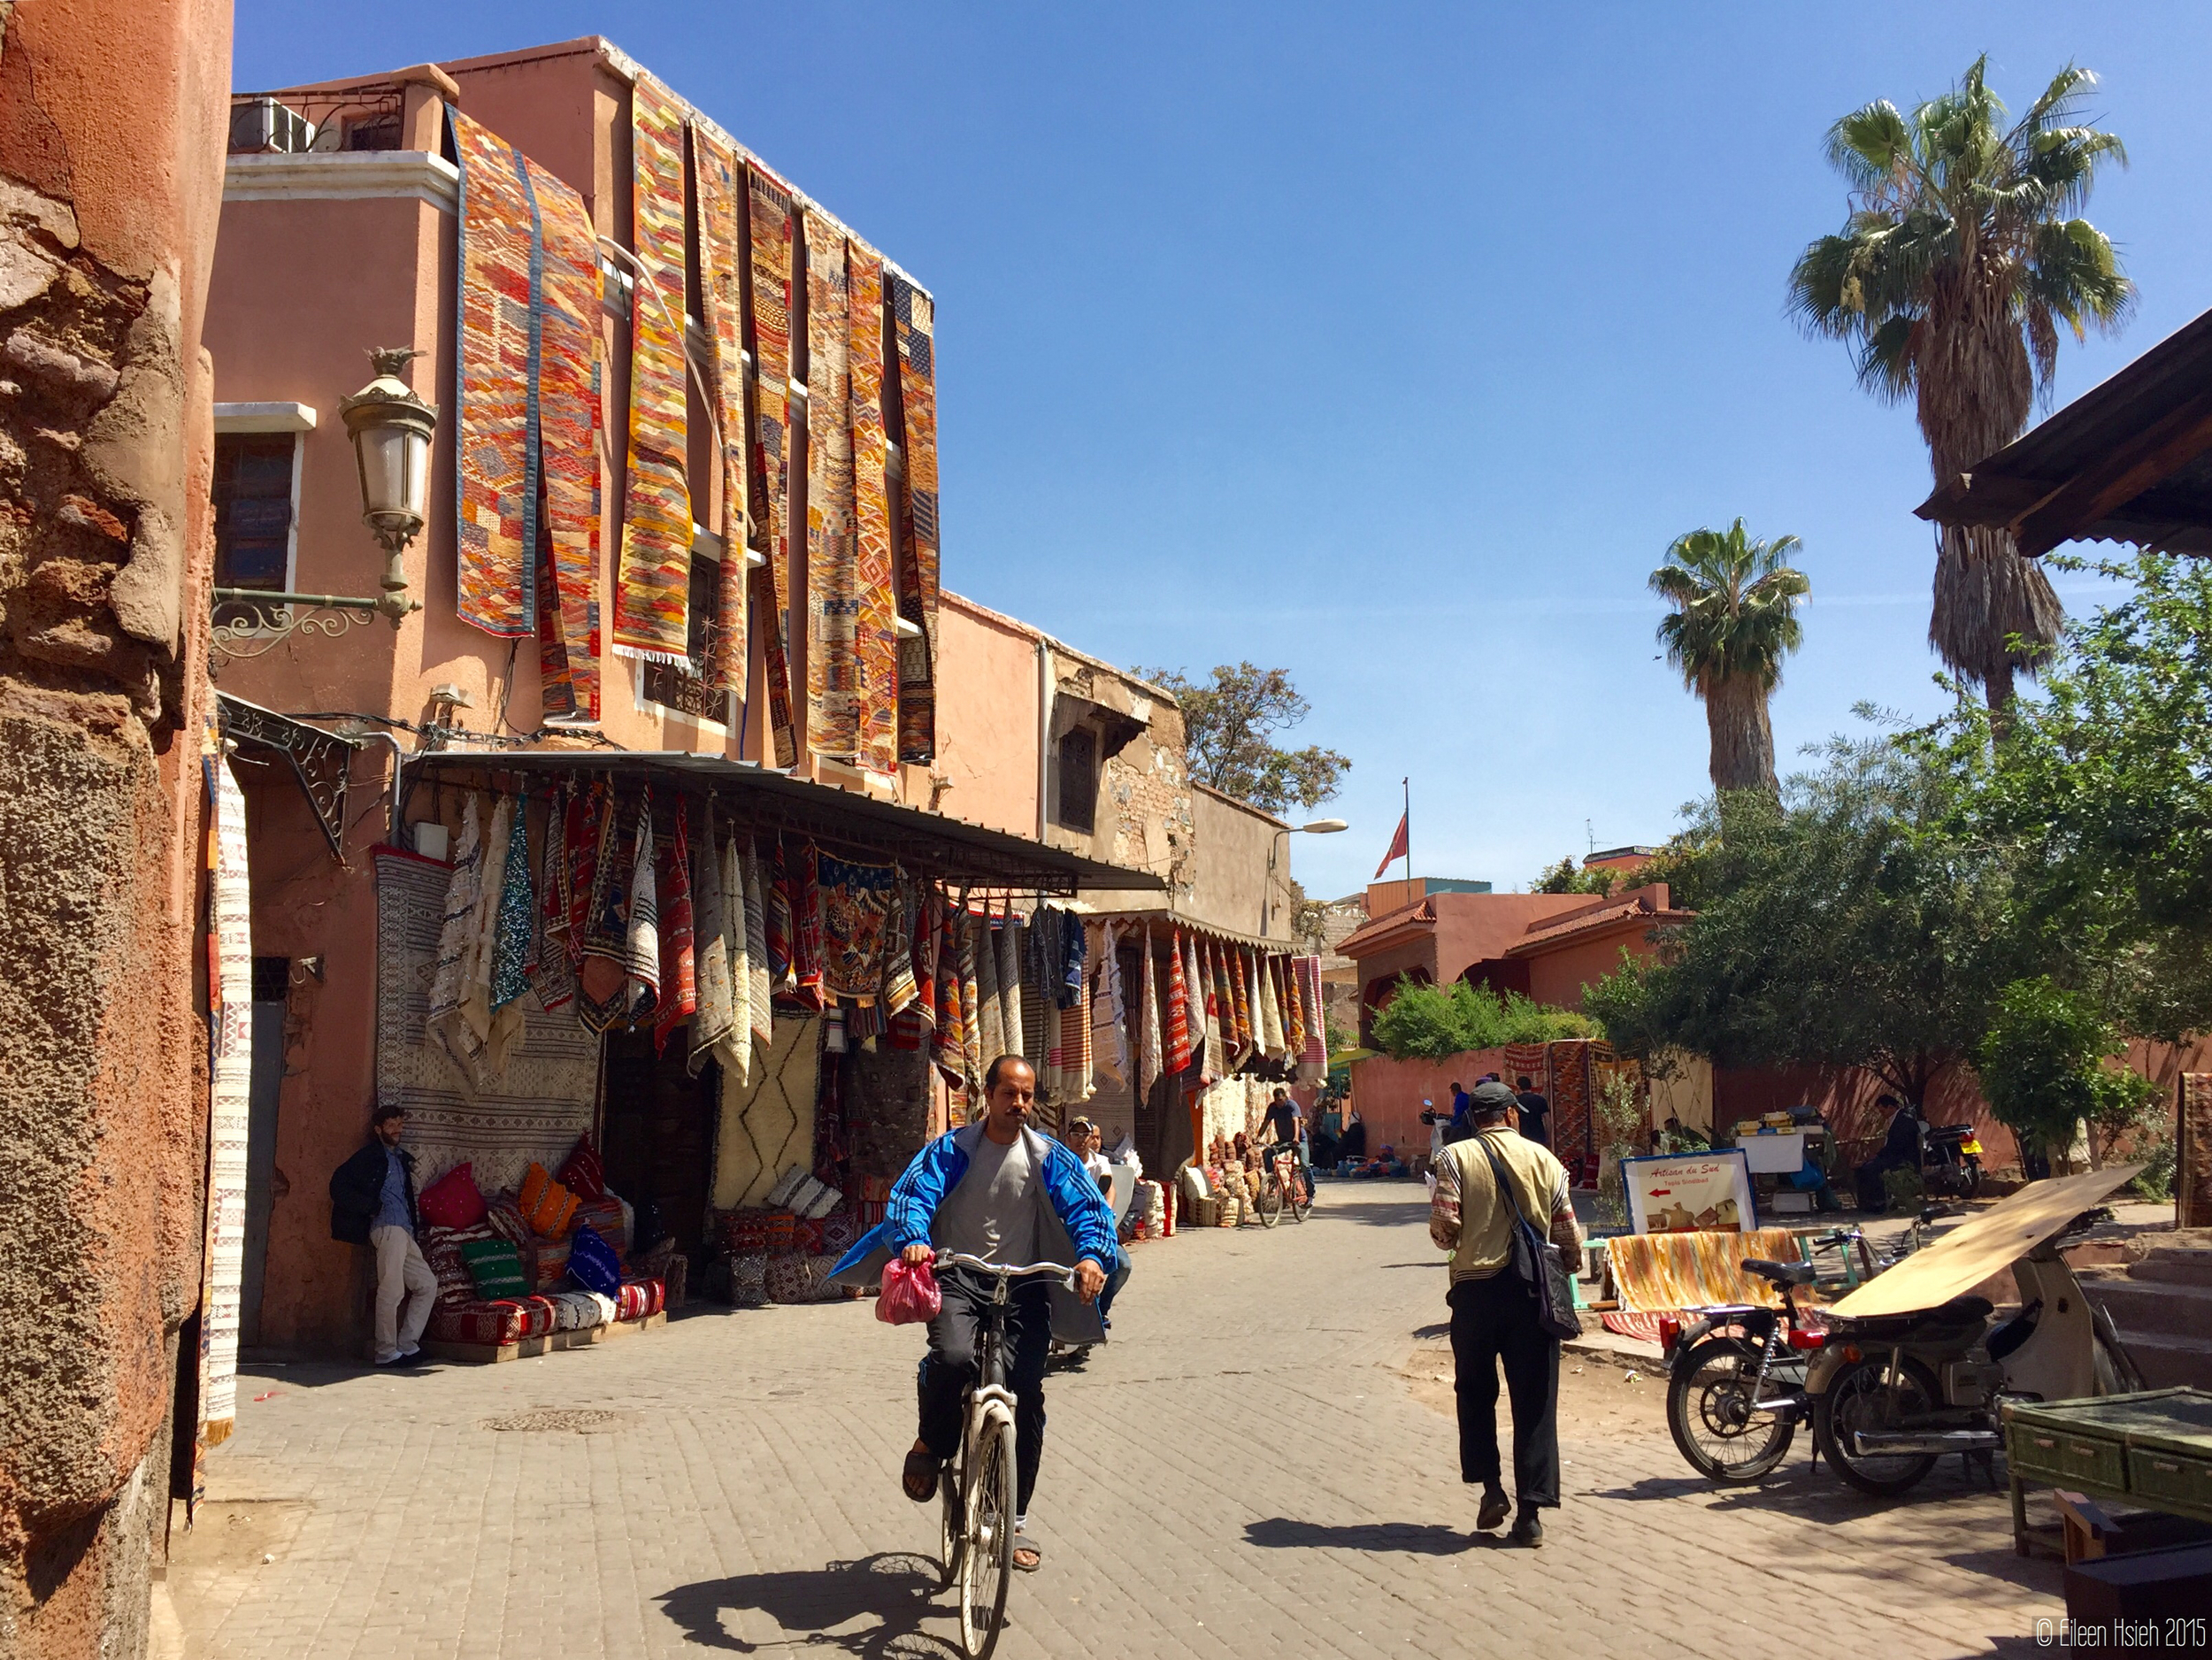 "Marrakech is often referred to as the ""Rose City"" or the ""Red City"" for its salmon pink buildings and the nearly thousand-year-old ramparts.  馬拉喀什老區處處可見鮭魚色的建築與  近千年歷史的  城牆,為它贏得了「玫瑰城」或是「紅城」的美名。"